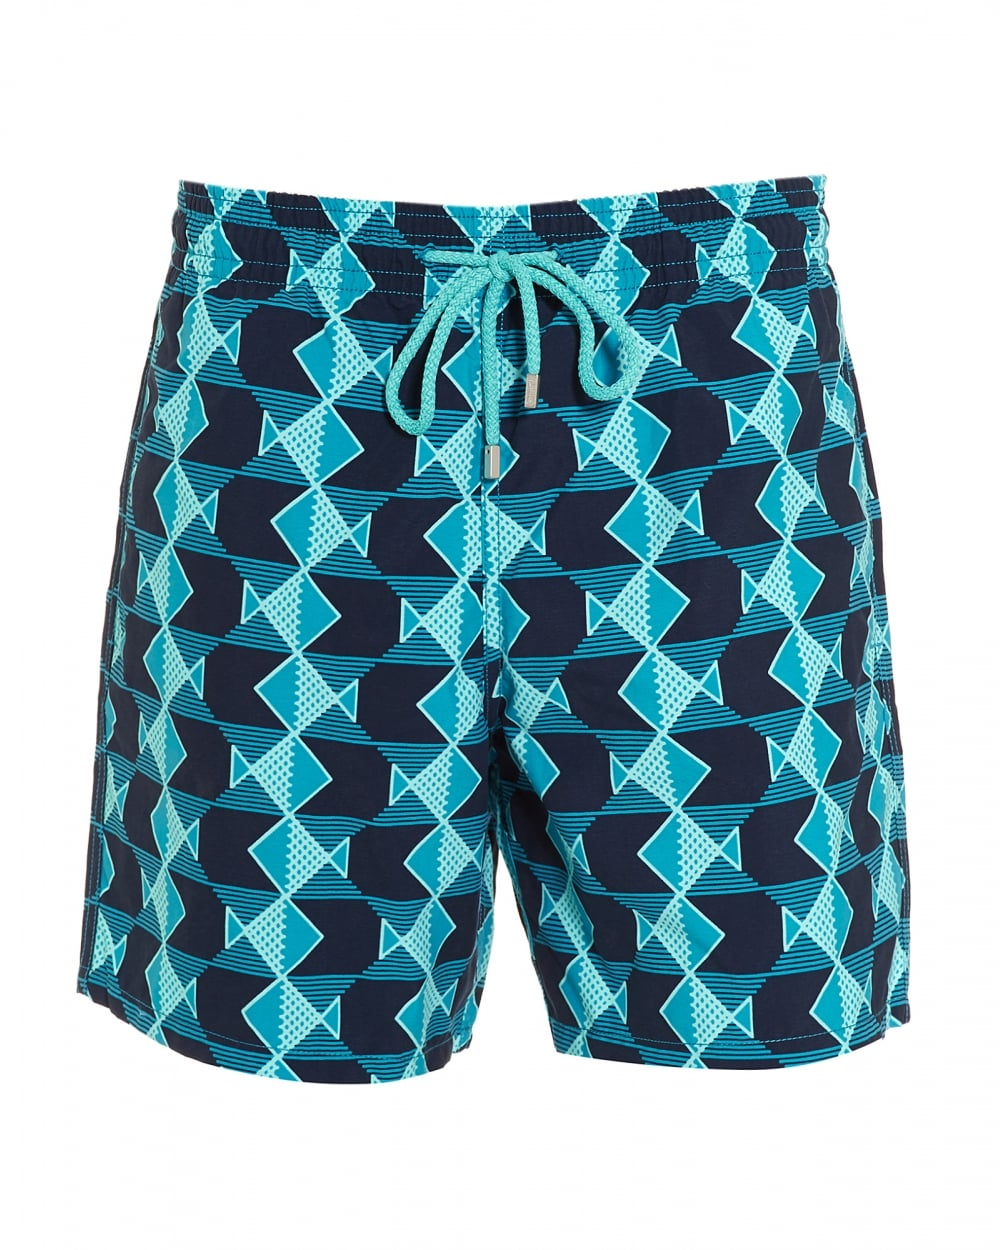 e2a0e7d904 Mens Moorea Swim Shorts, Prussian Blue Navy Geometric Fish Swimming Trunks